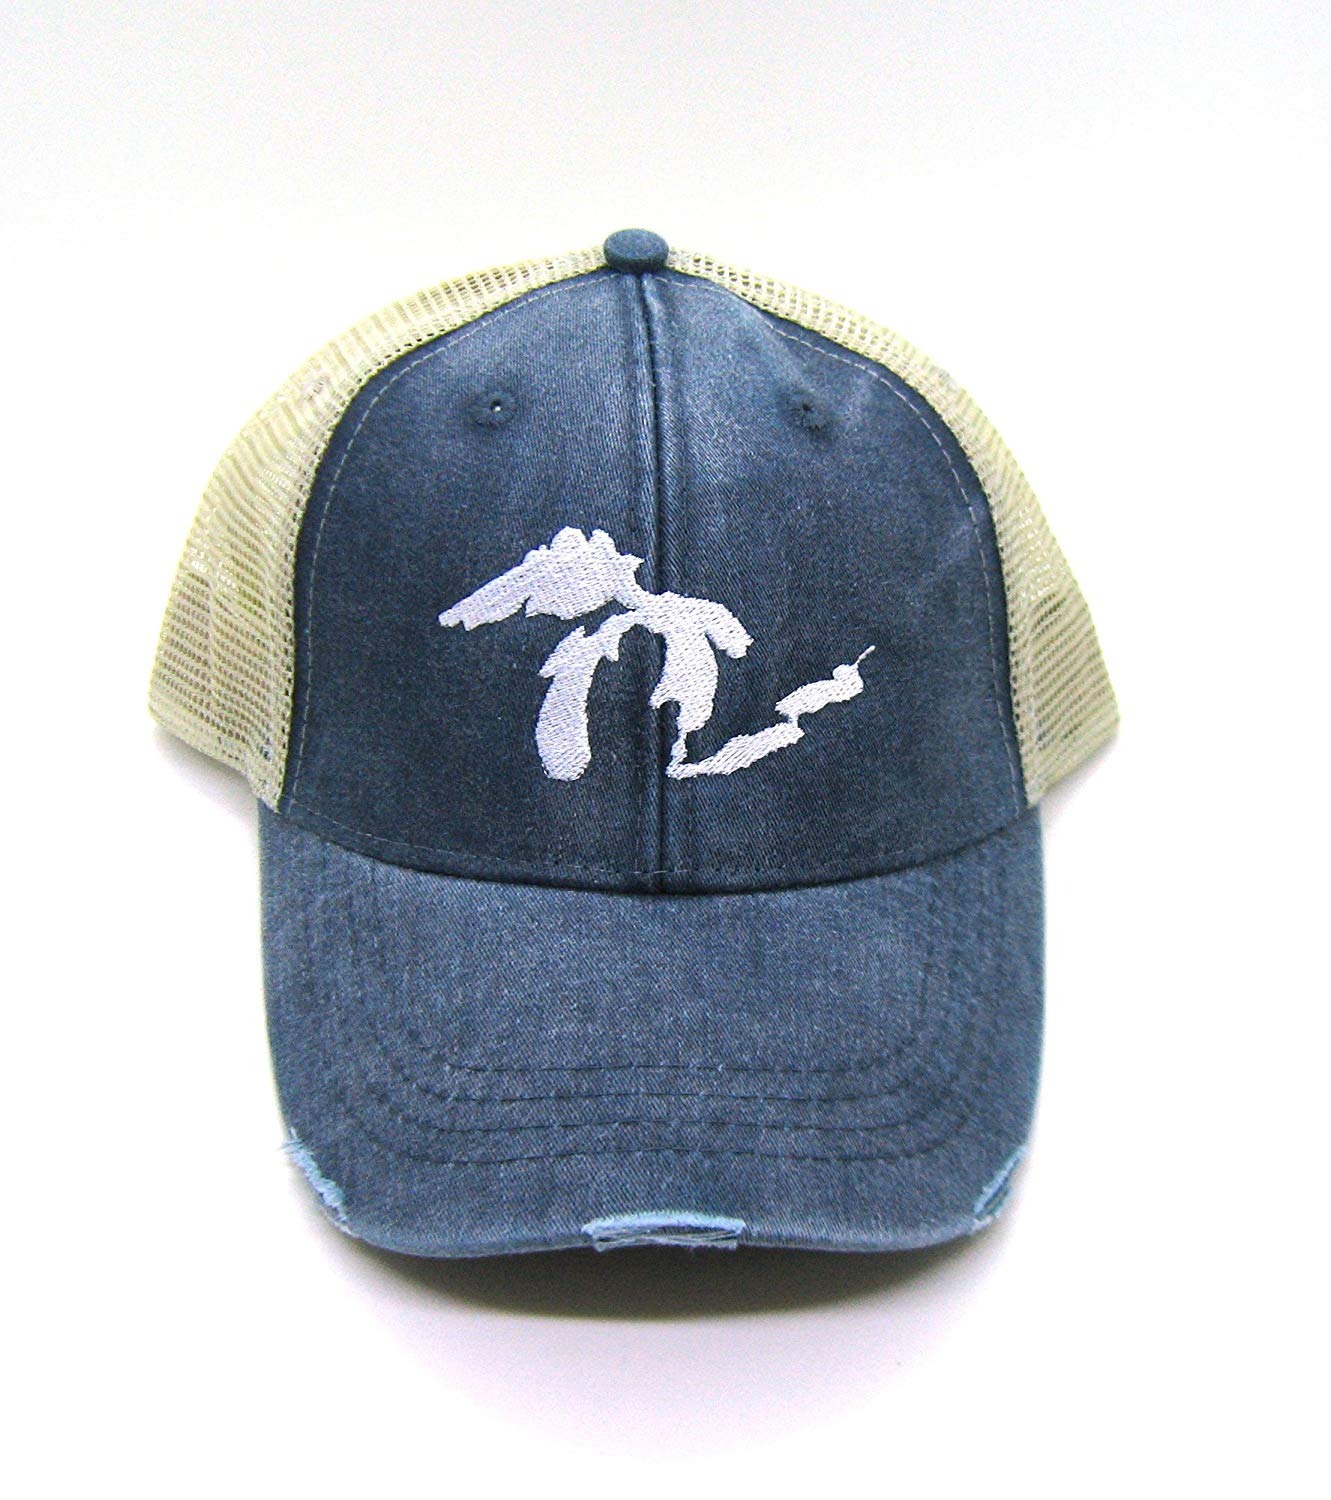 6ba15e9c251 Get Quotations · Navy Blue Distressed Great Lakes Trucker Hat